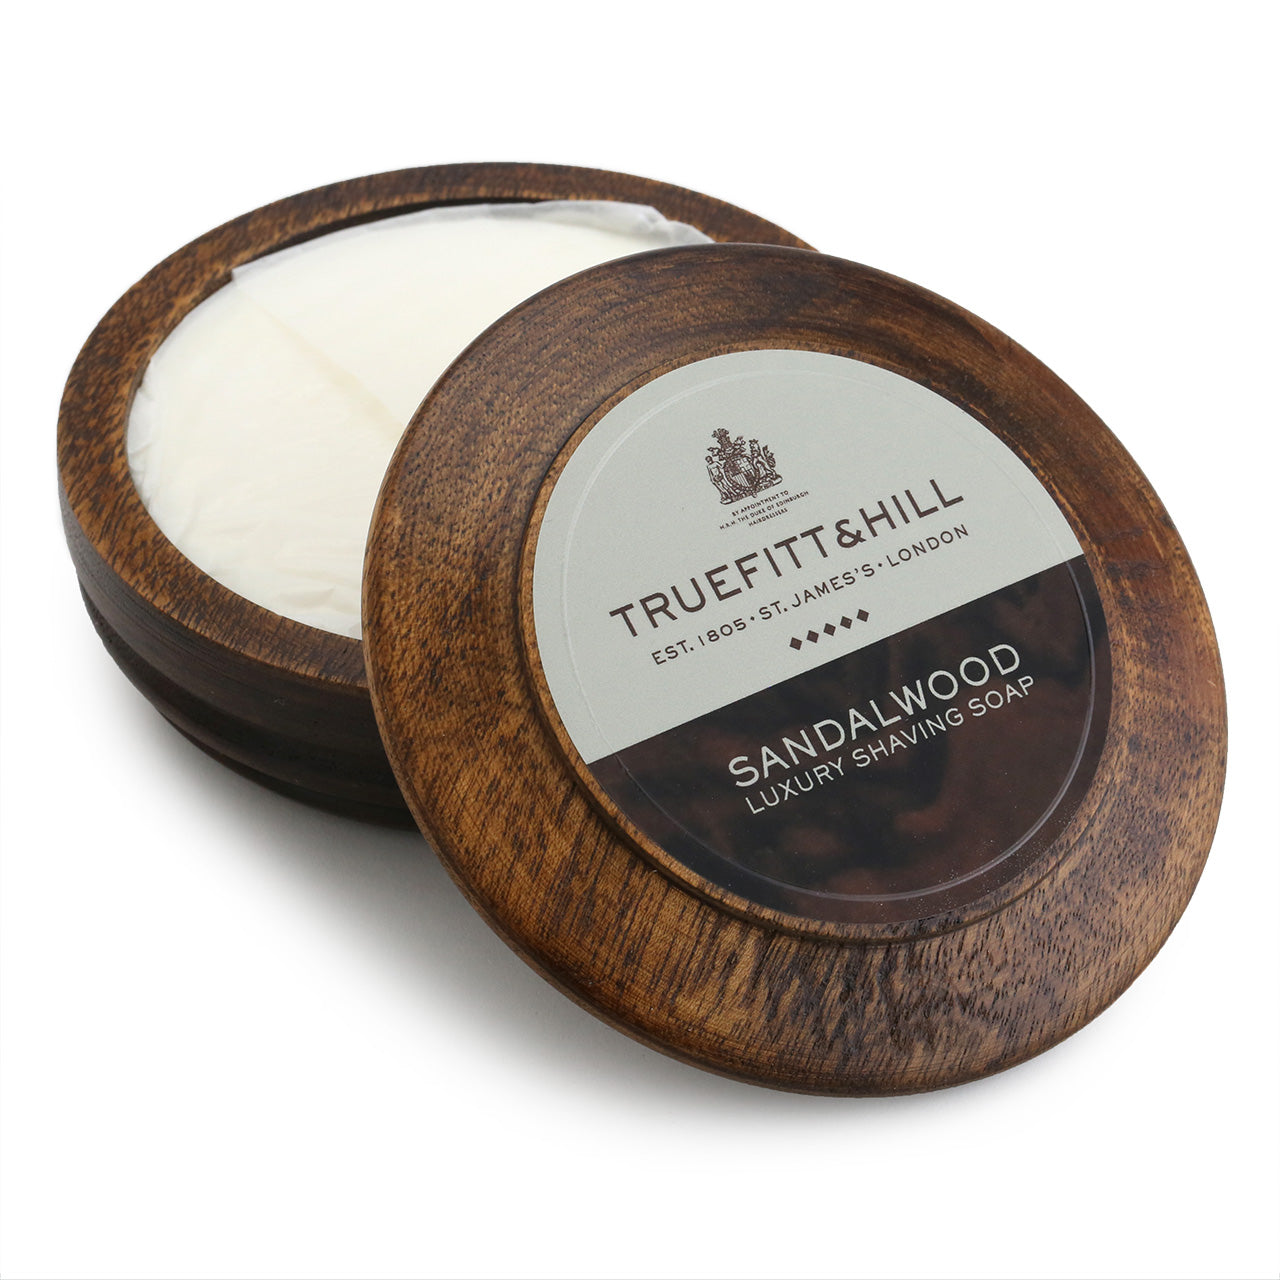 Truefitt & Hill 3piece gift set - Ultimate Comfort Pre-shave Oil, Sandalwood Luxury Shaving Soap in a Wooden Bowl, and Aftershave Balm